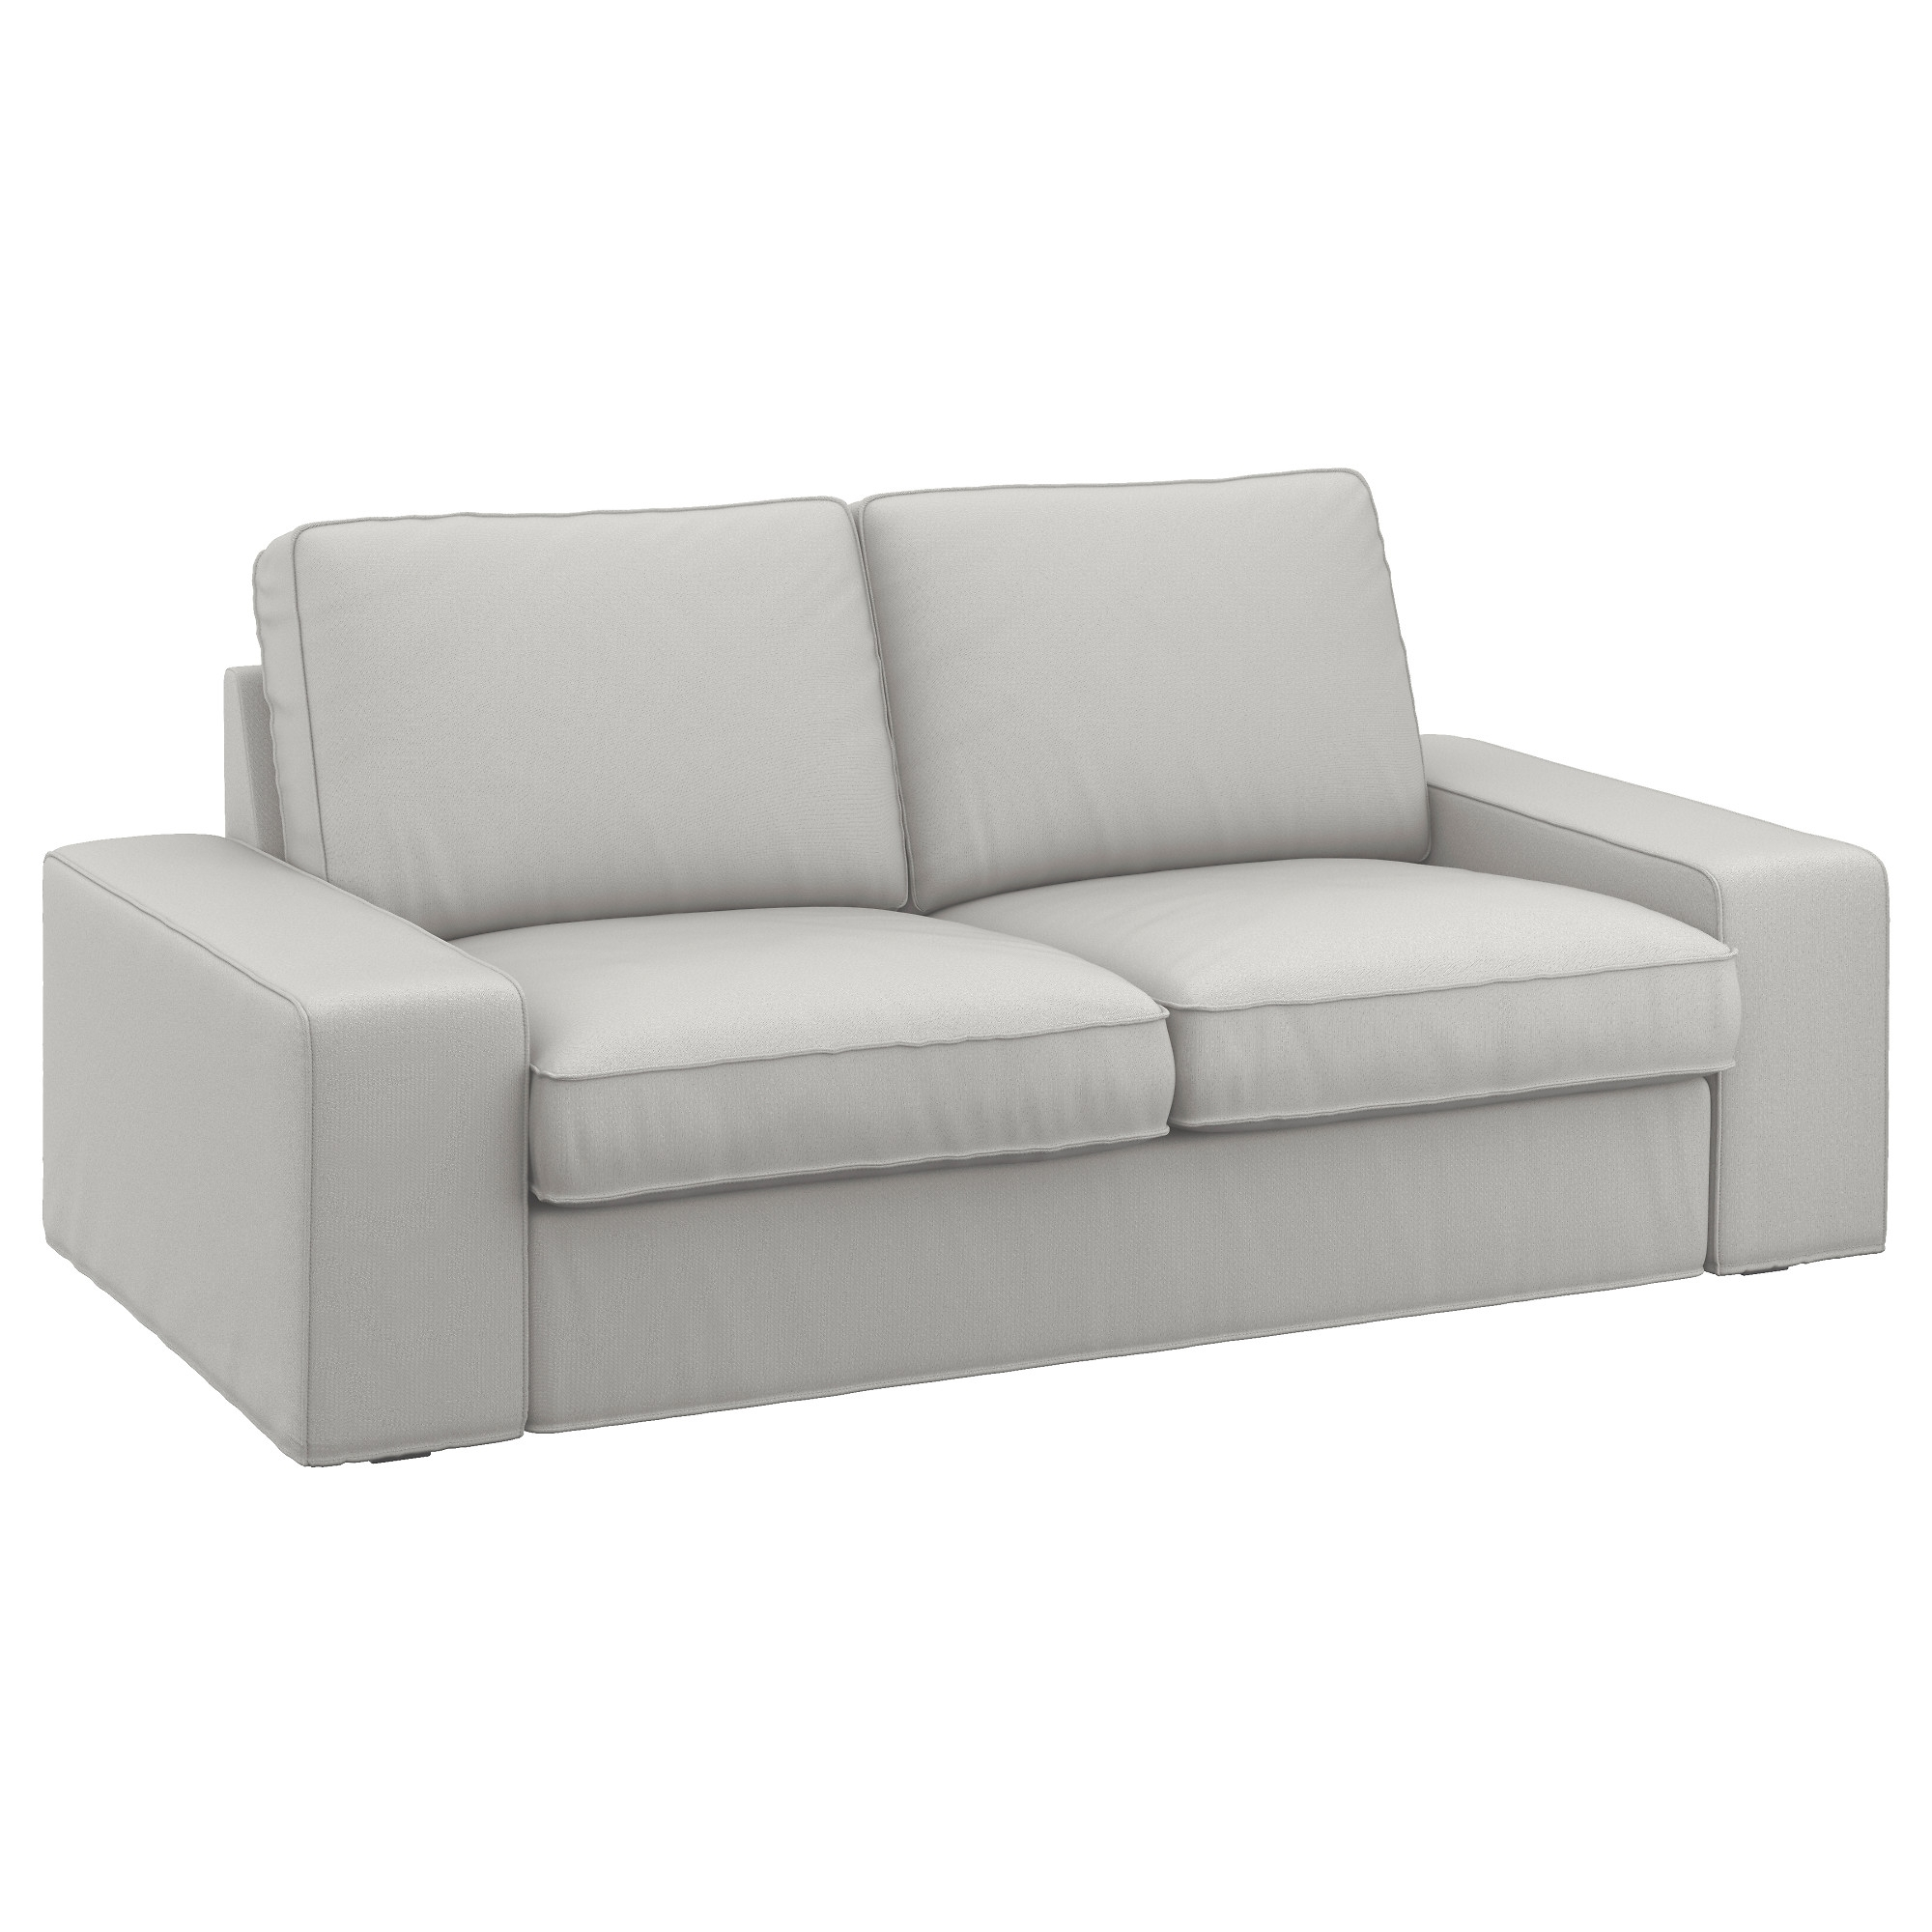 Most Up To Date Kivik Two Seat Sofa Ramna Light Grey – Ikea In Ikea Two Seater Sofas (View 16 of 20)